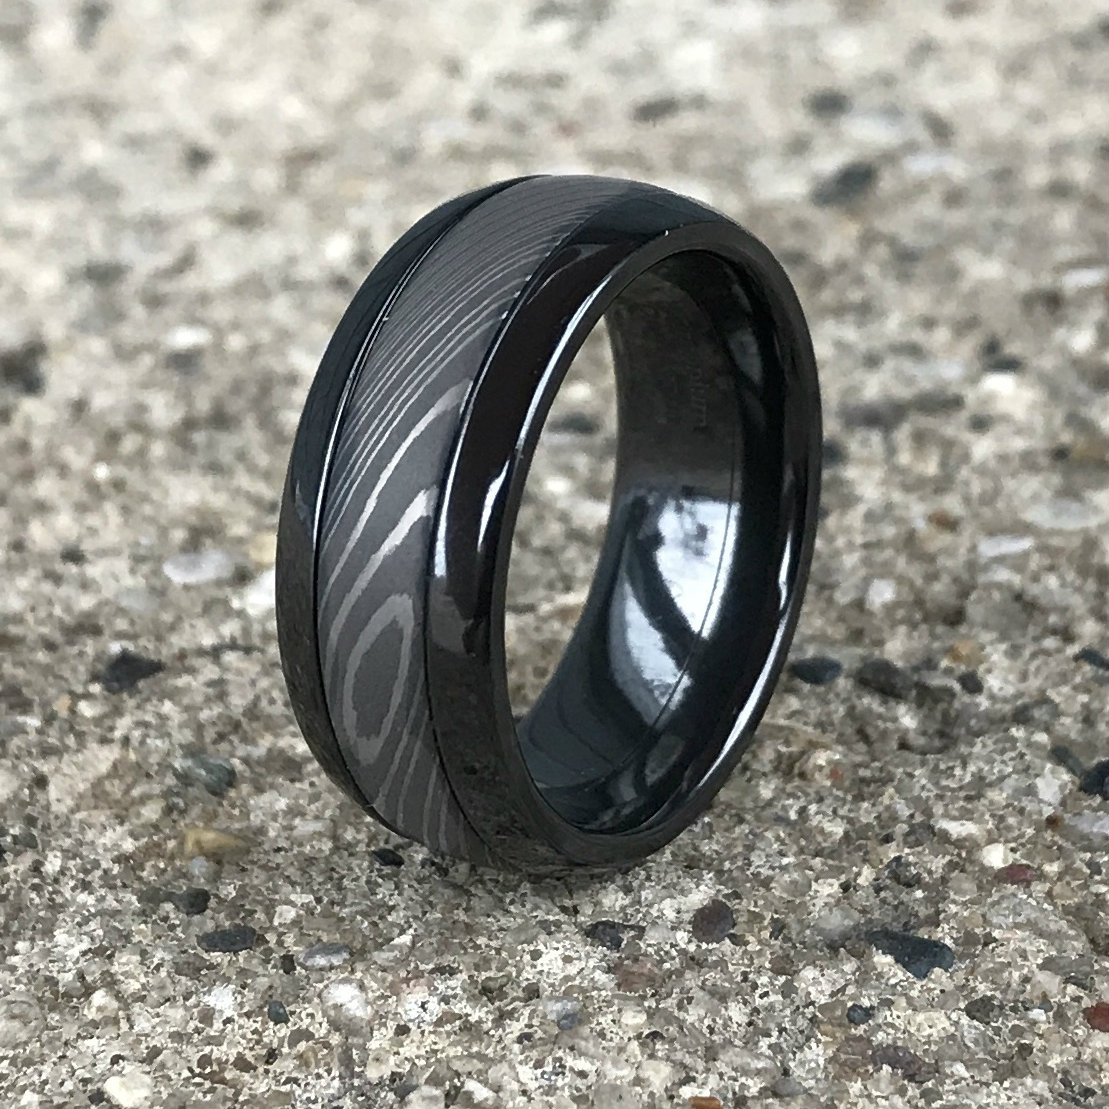 Men's Dome Profile Black Zirconium Ring with Damascus Steel Inlay